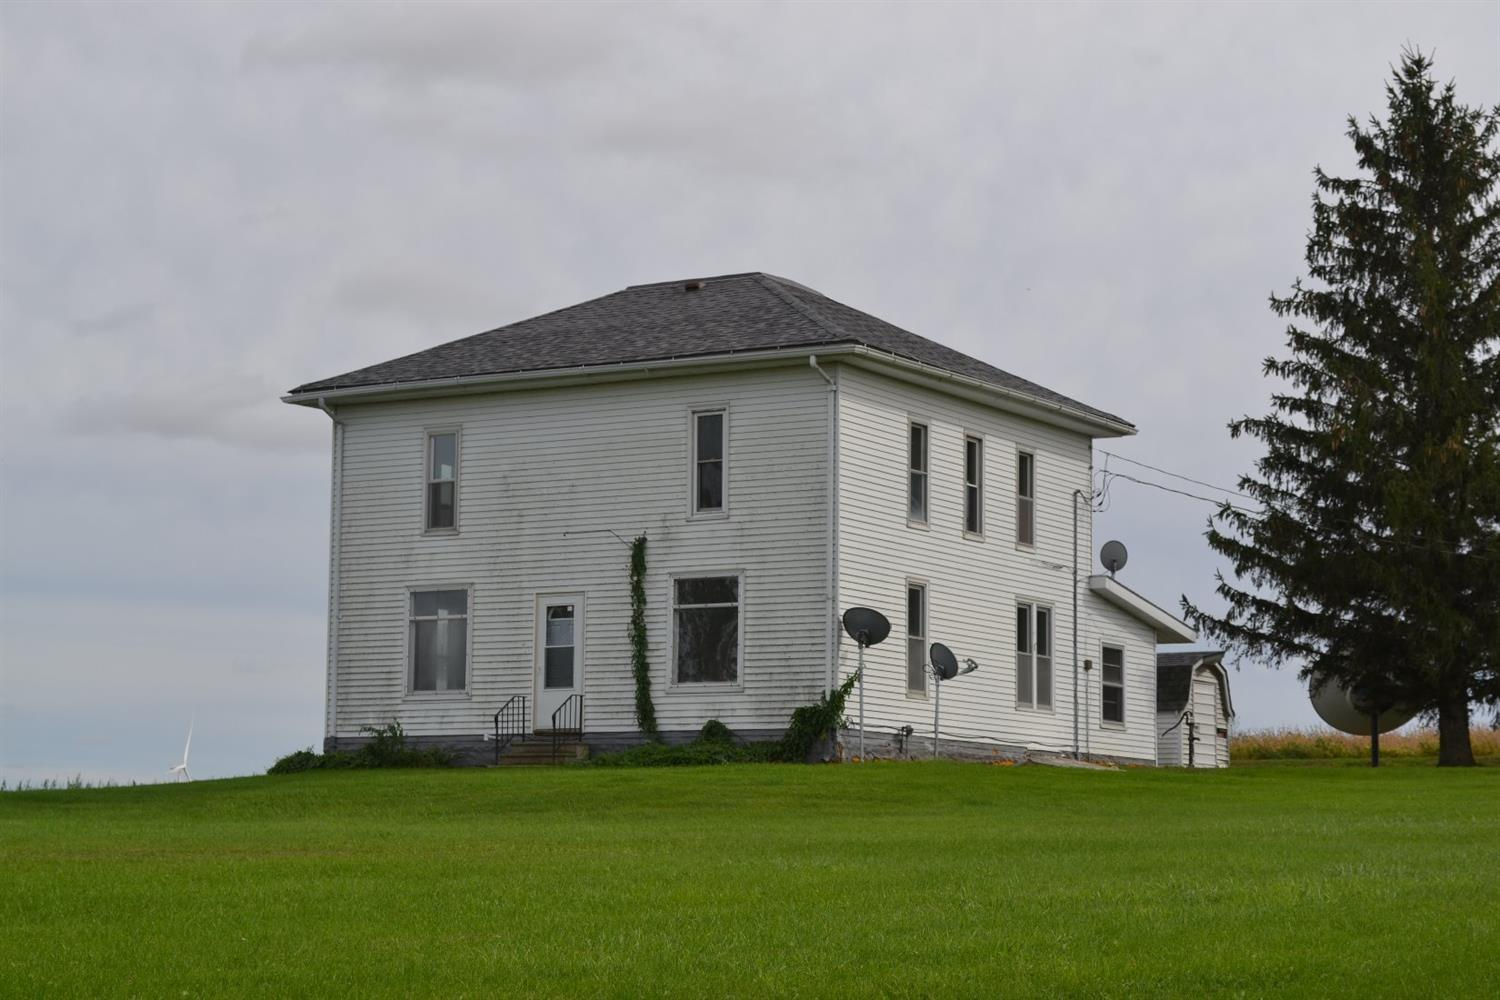 Image of Residential for Sale near Gladbrook, Iowa, in Tama county: 3.85 acres